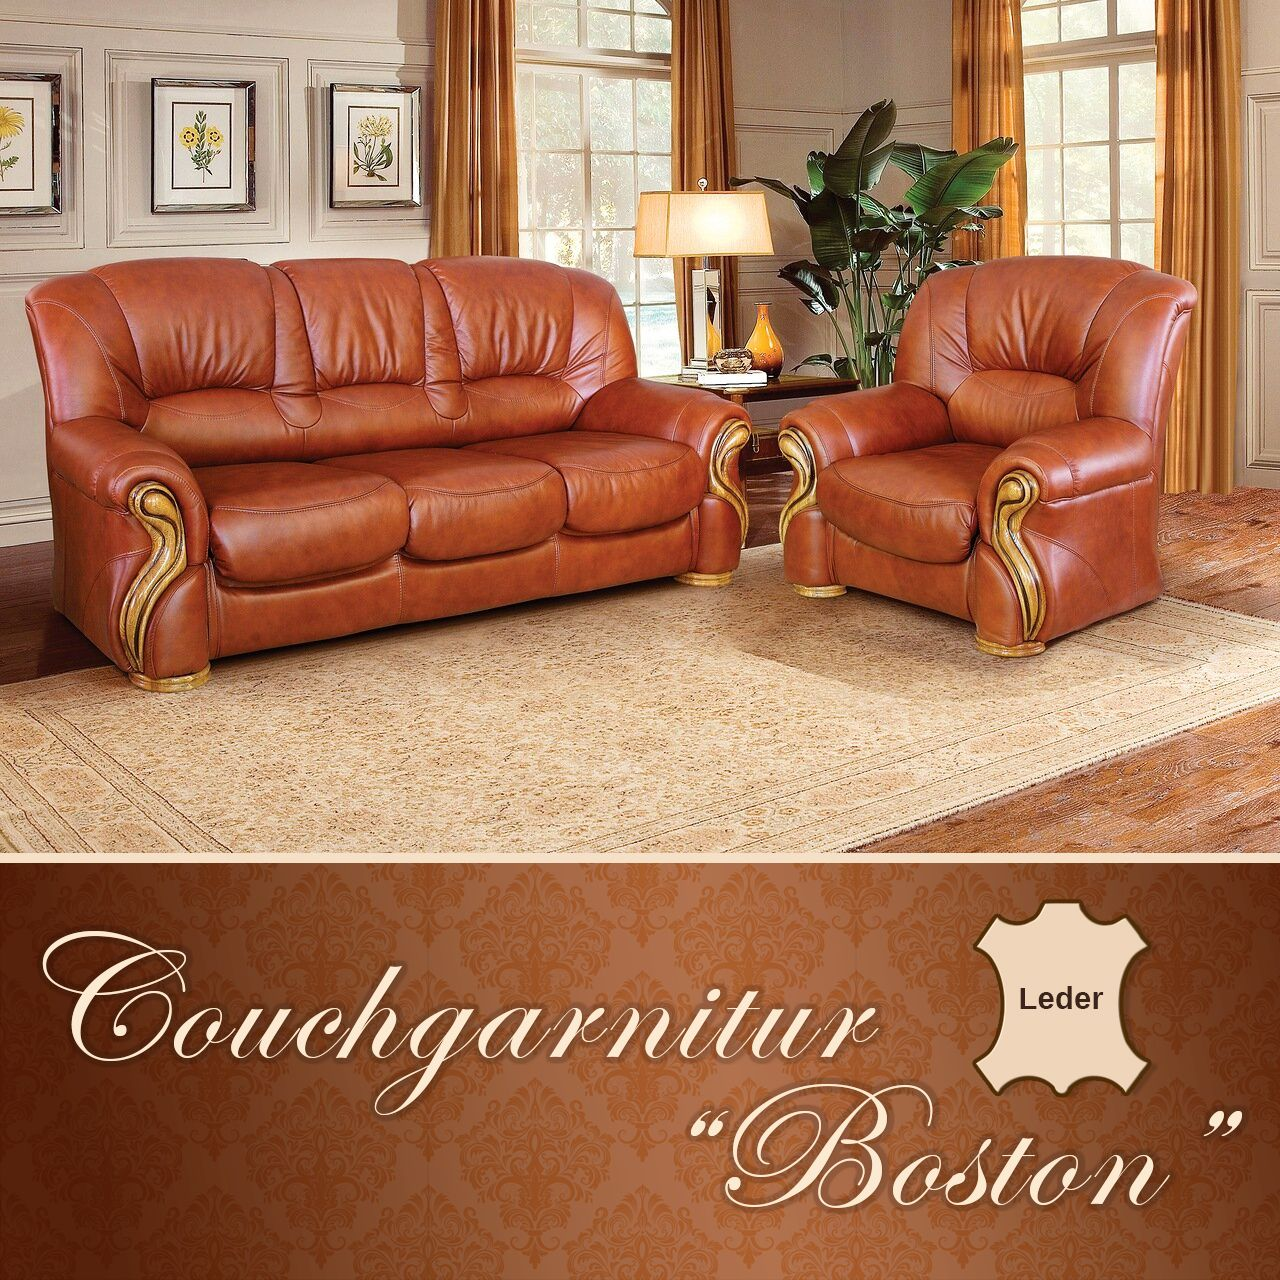 Boston Couchgarnitur Schlafcouch 2 Sessel Leder Eichenholz Couch Couchgarnitur Sessel